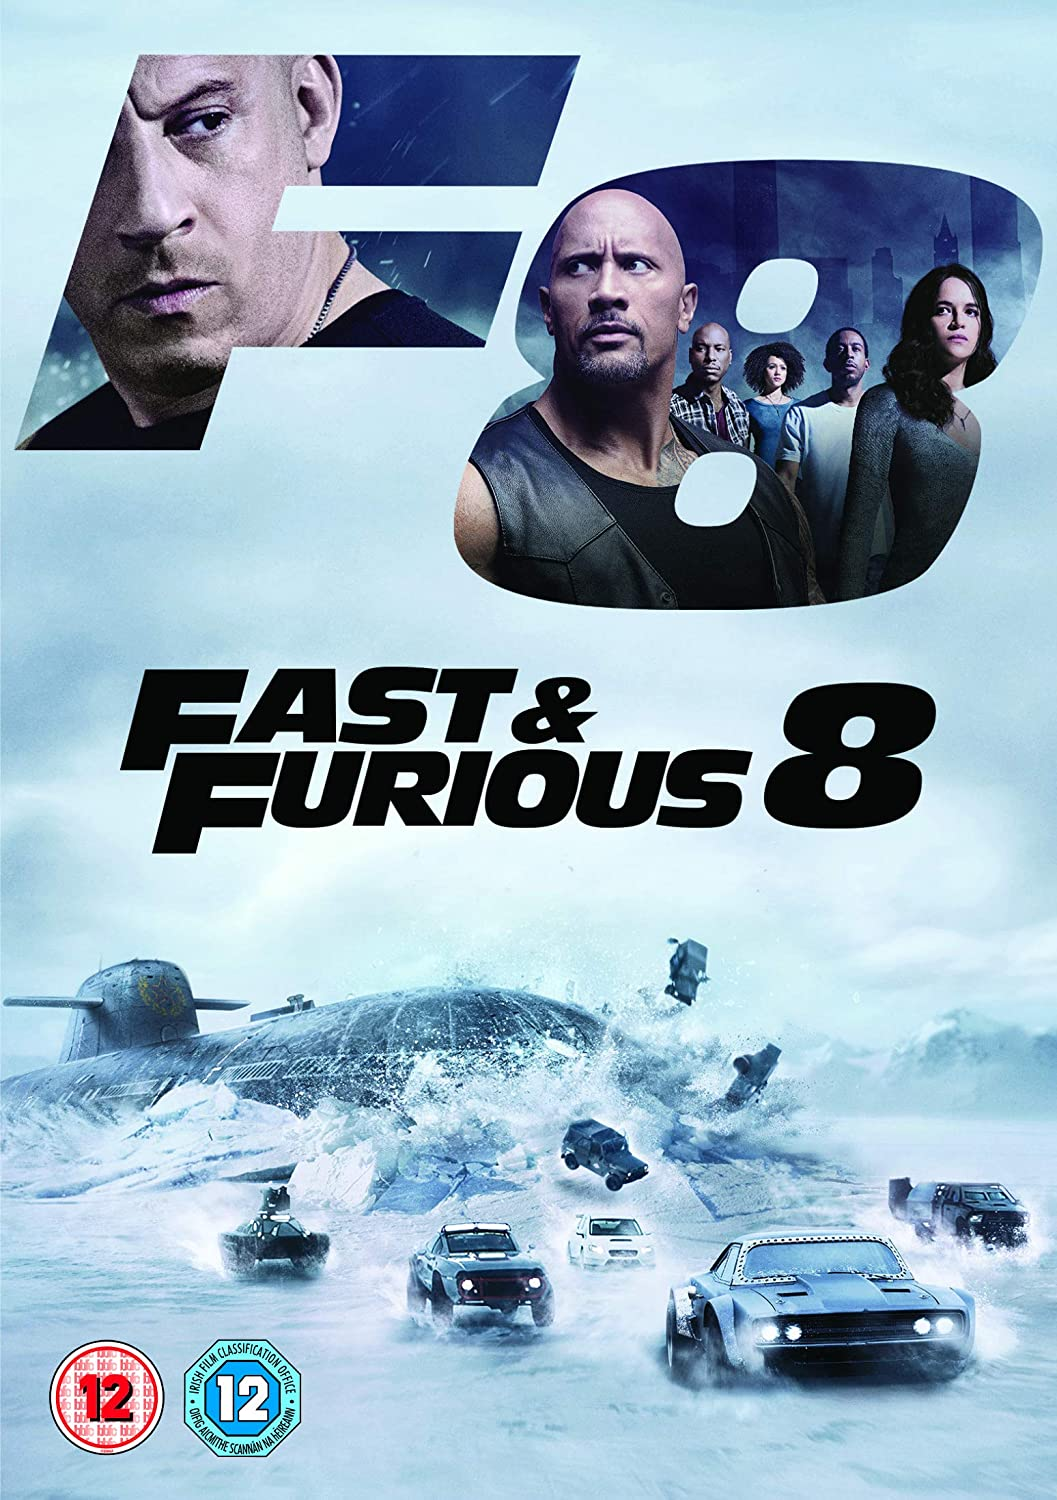 Fast and Furious 8 [DVD] [2017]: Amazon co uk: Vin Diesel